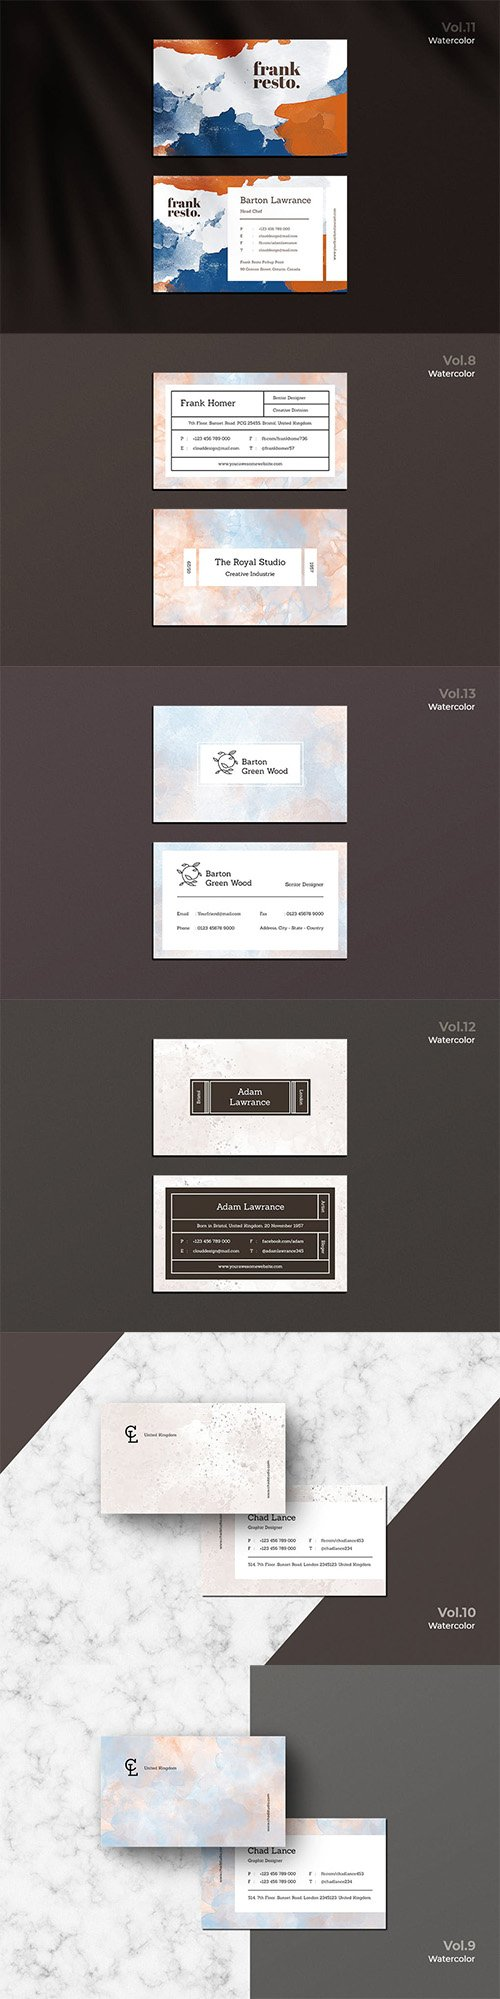 6 Business Cards Watercolor Vol-8-13 PSD